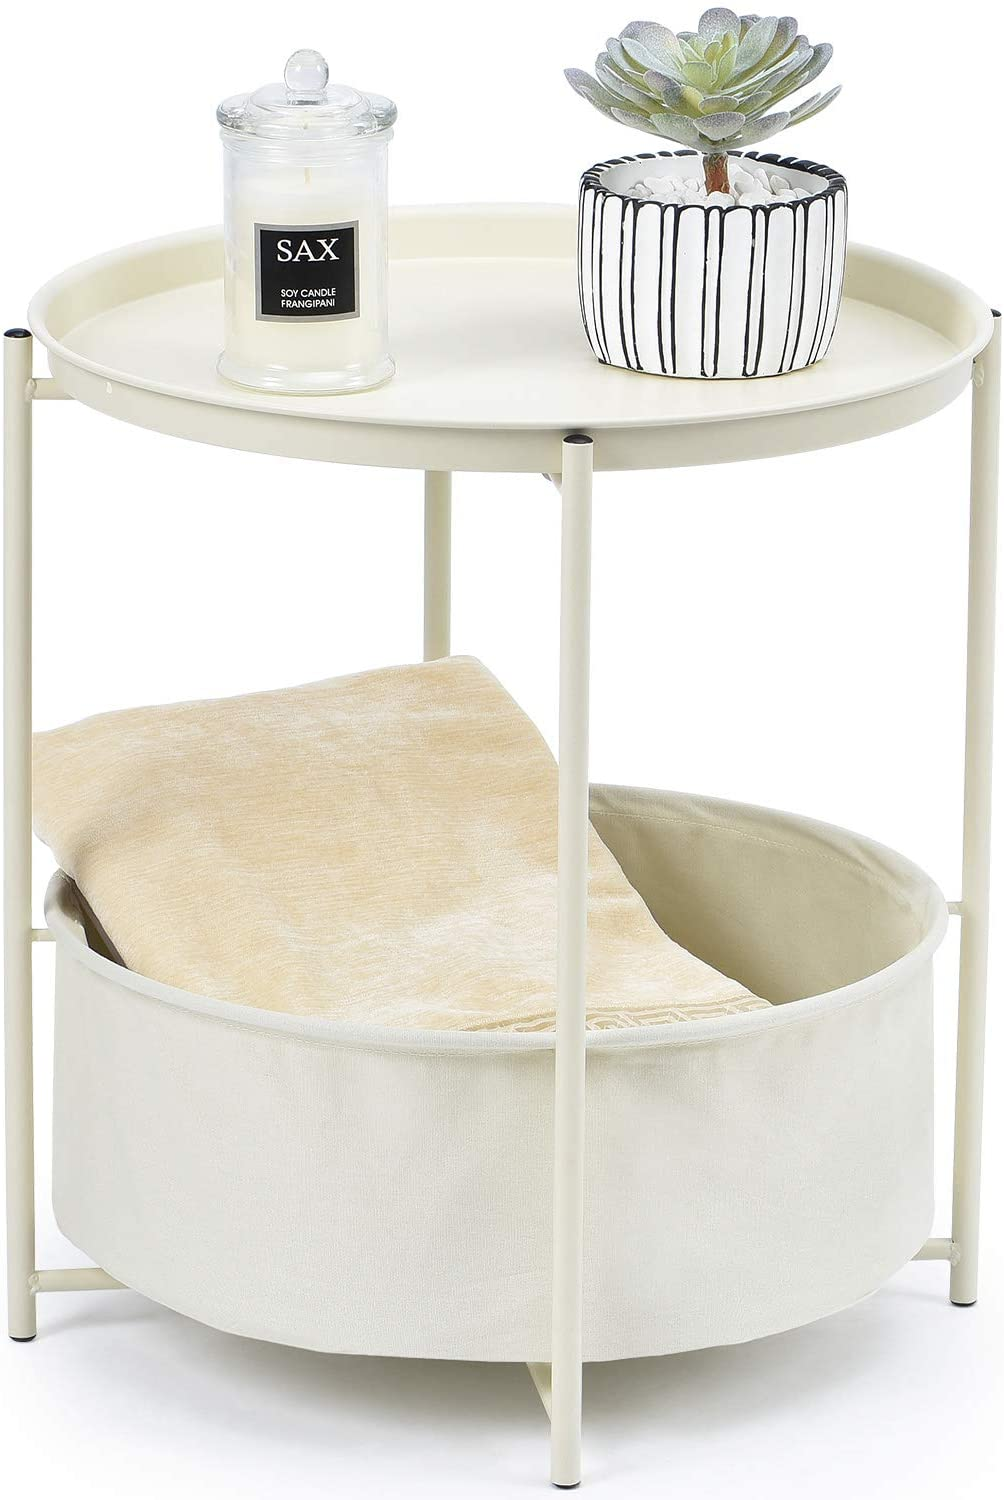 KINGRACK End Table, Metal Nightstand, Sofa Side Snack Table, Coffee Round Table with Detachable Tray Top and Fabric Storage Basket, Scandi Style Table for Living Room Bedroom (Beige White)